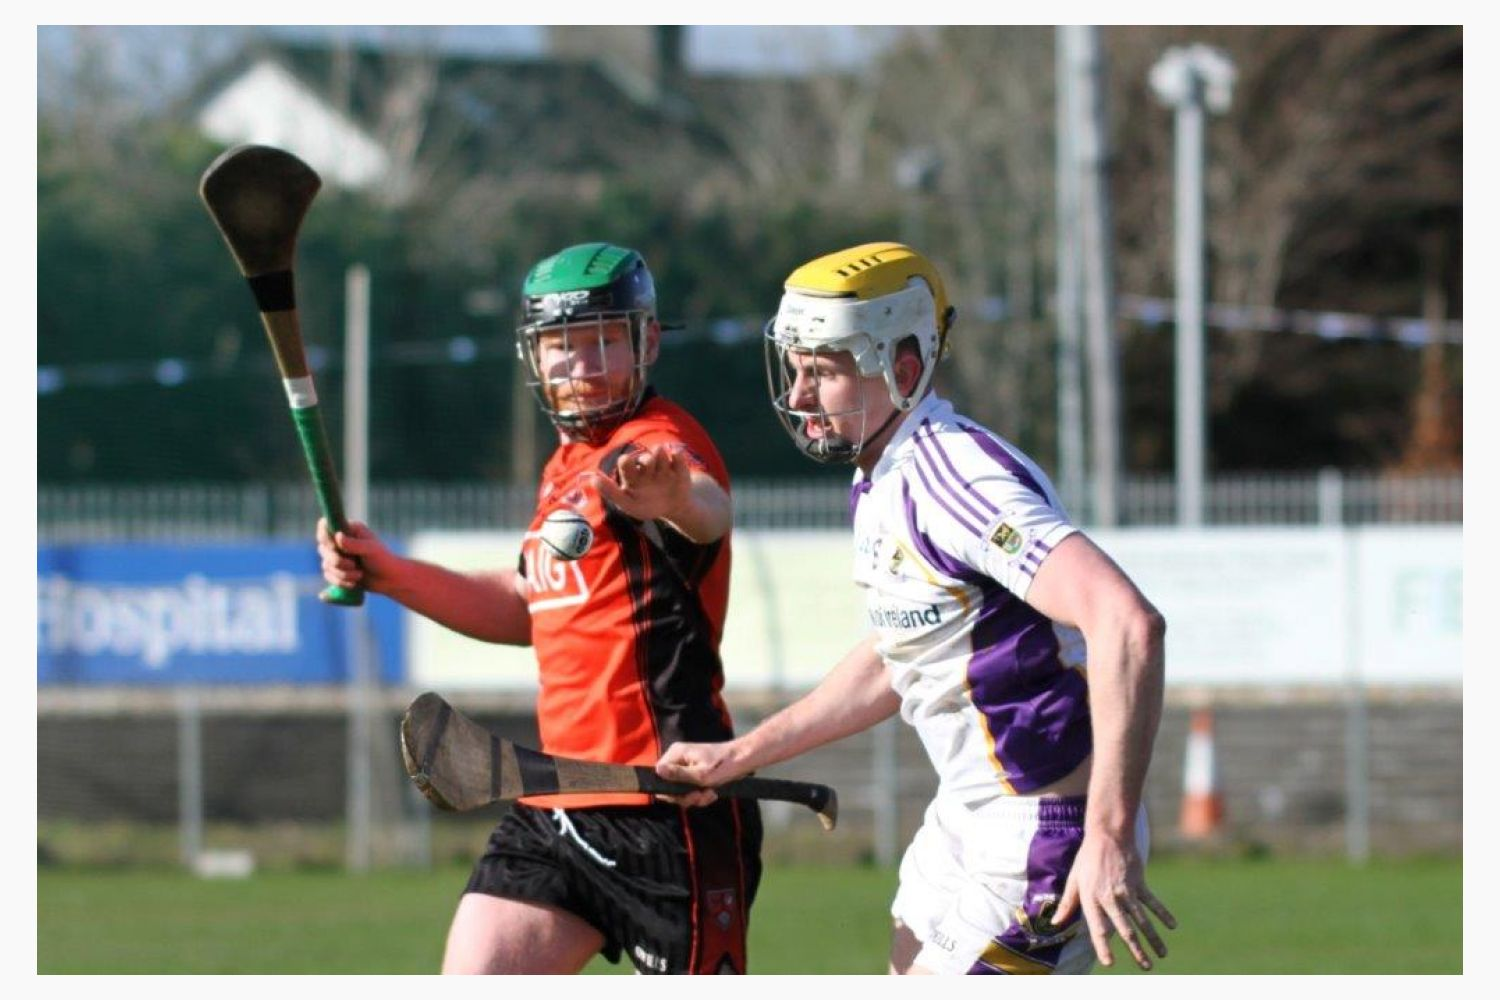 Good start to League for Senior A Hurling Team